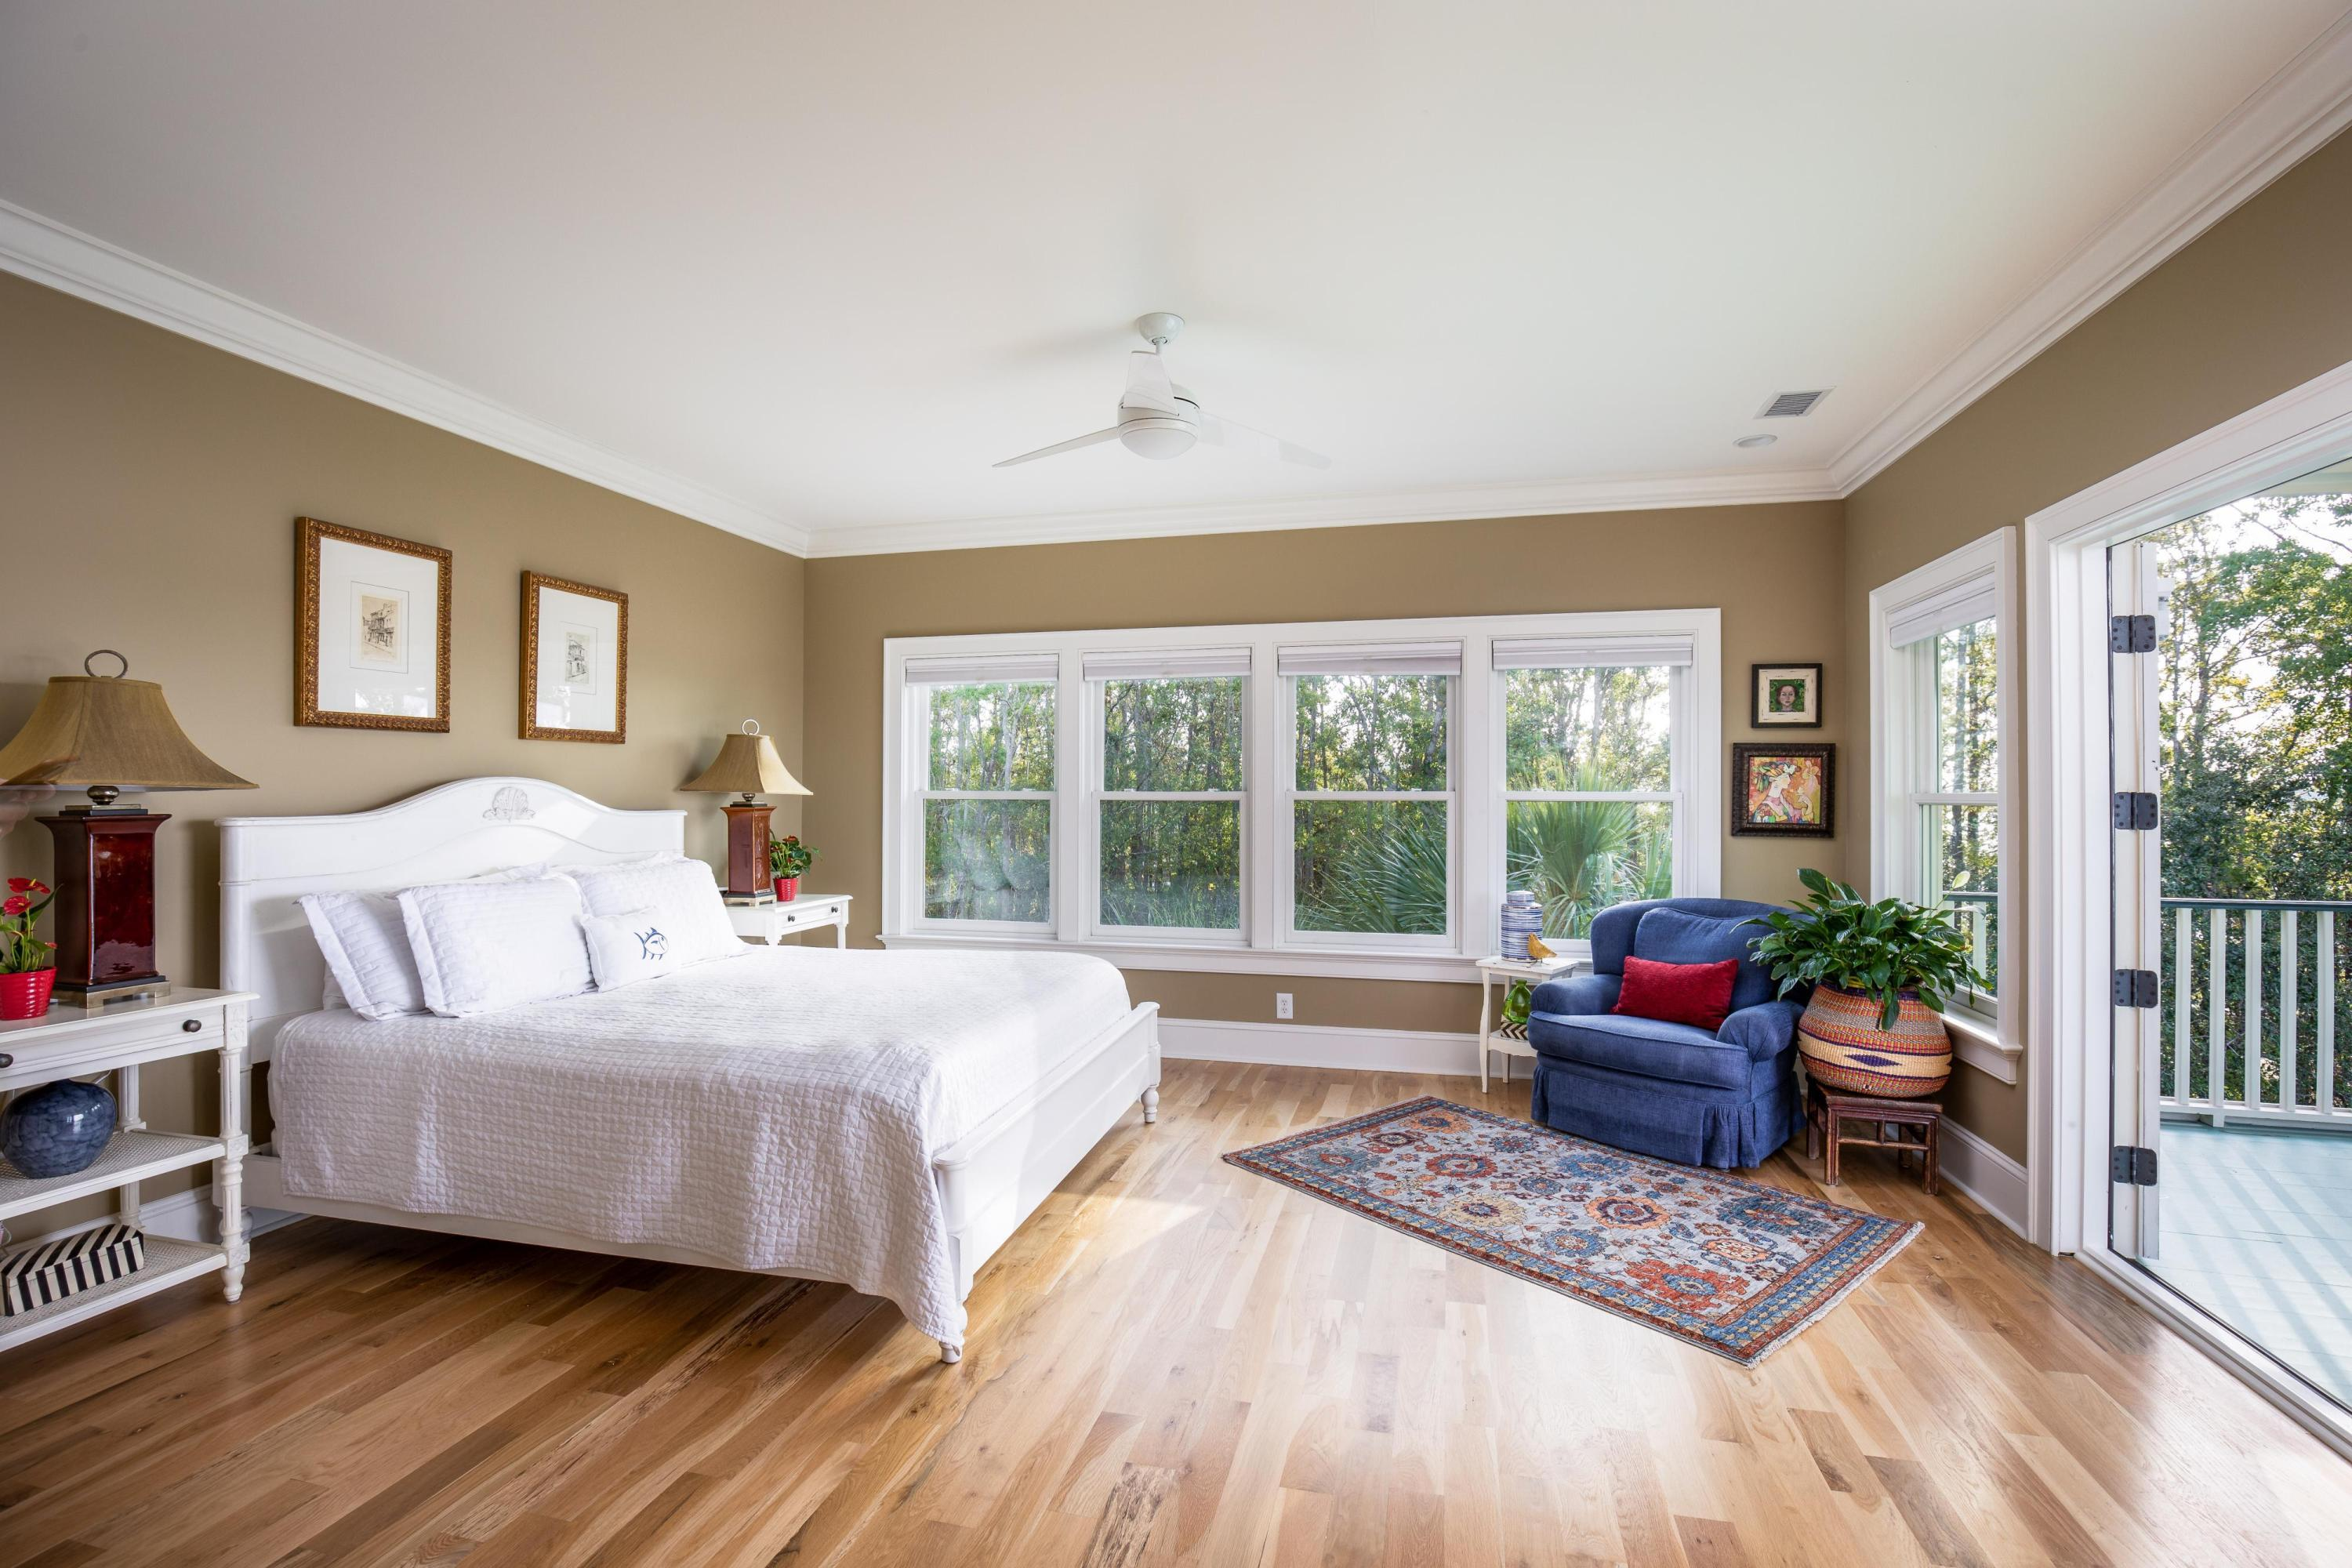 Rivertowne On The Wando Homes For Sale - 2212 Hartfords Bluff, Mount Pleasant, SC - 34